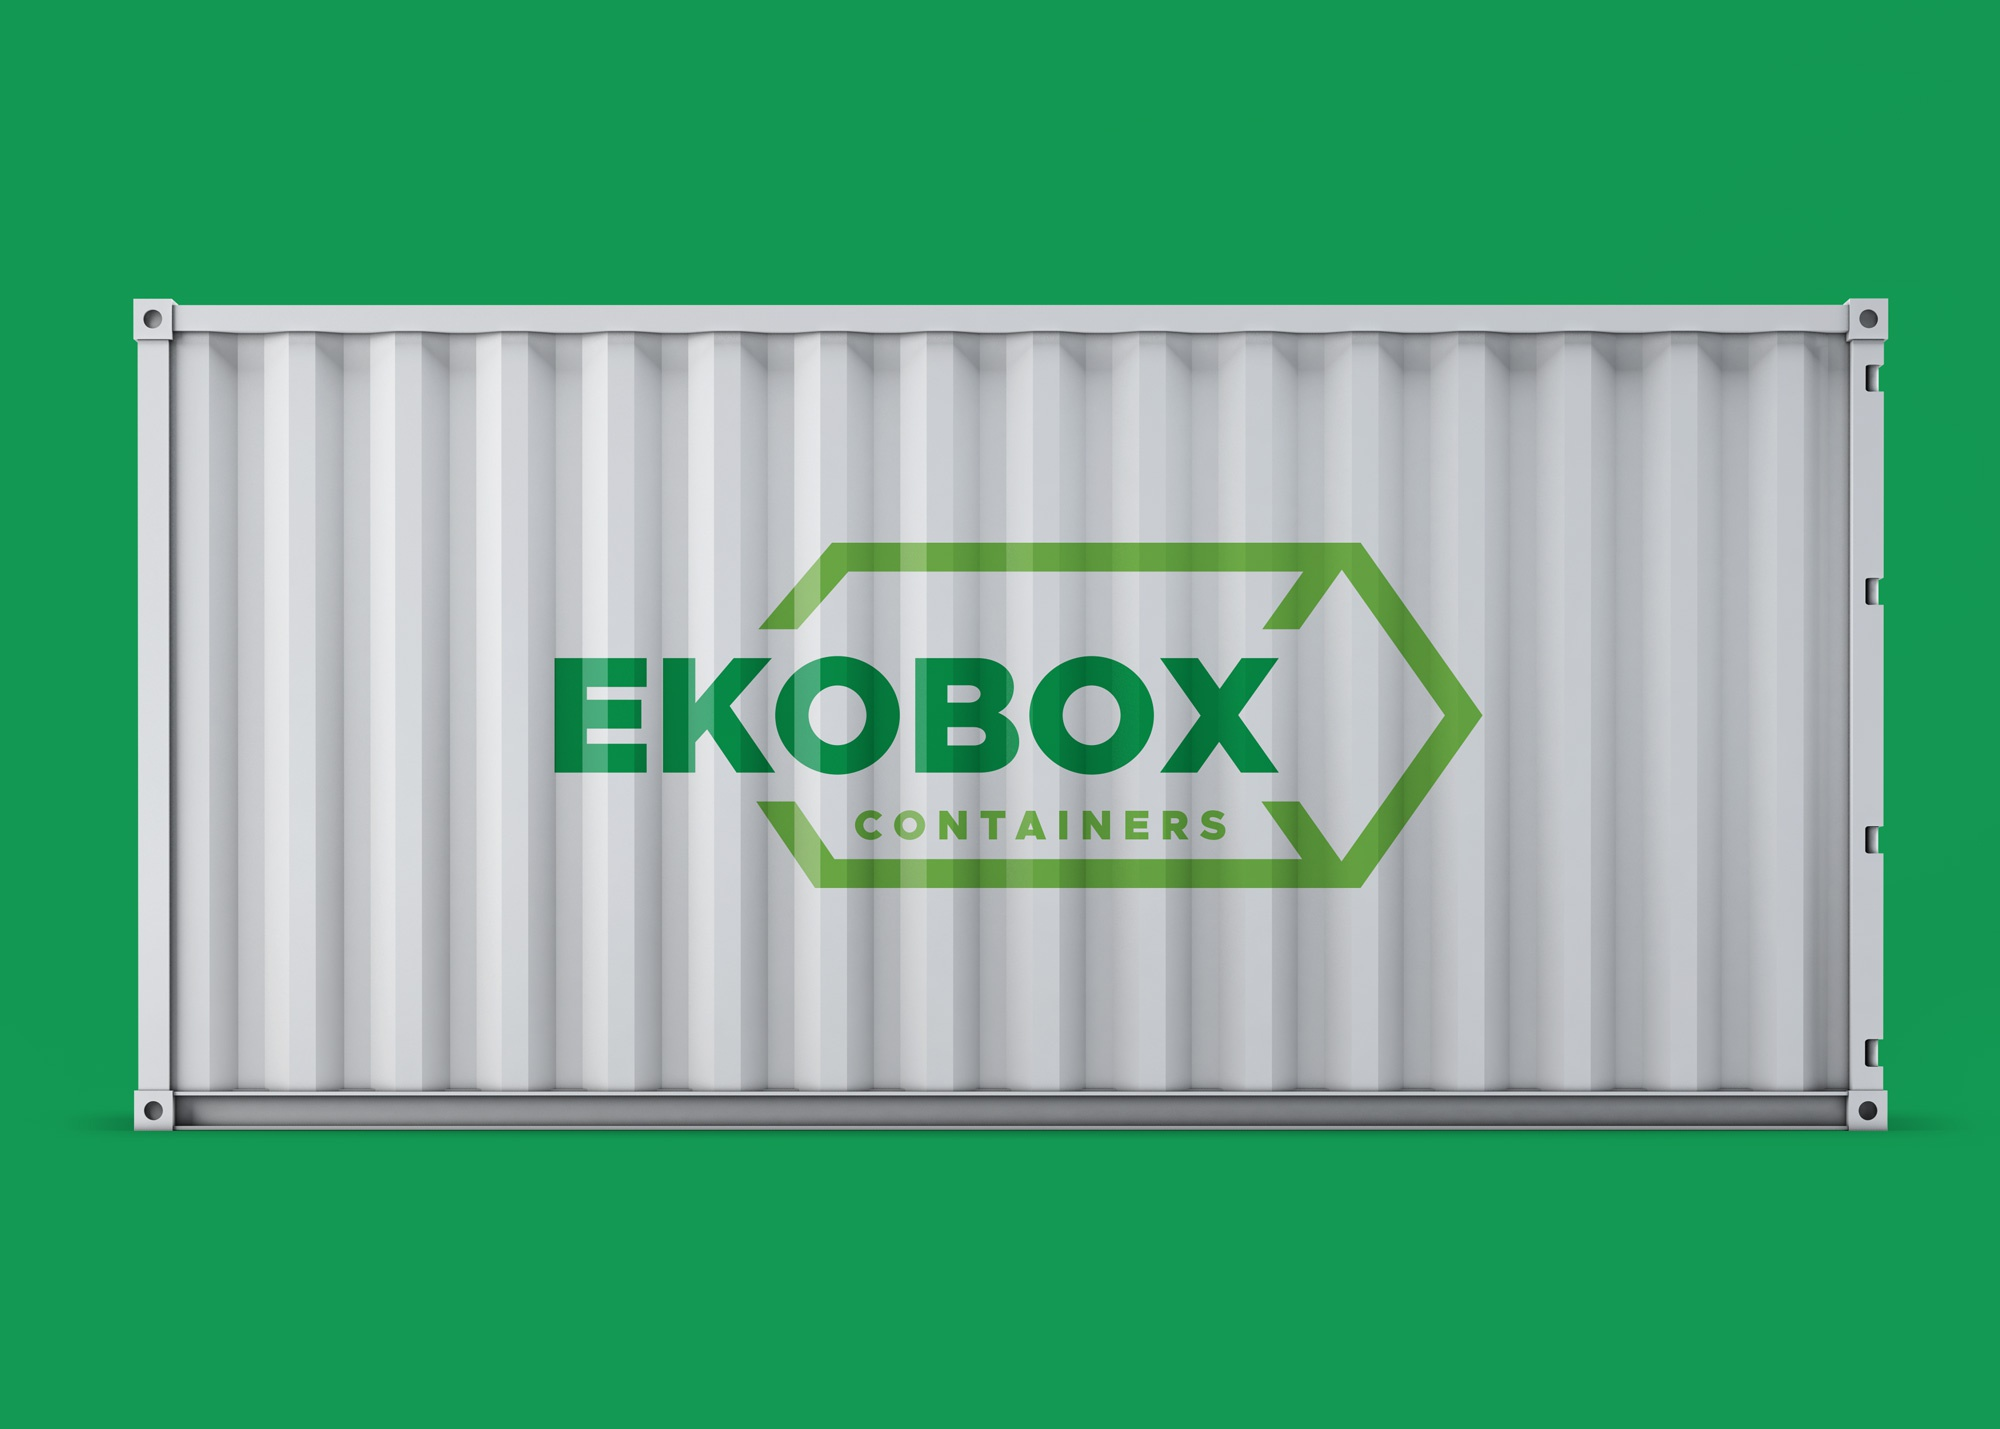 01 shipping container mock up